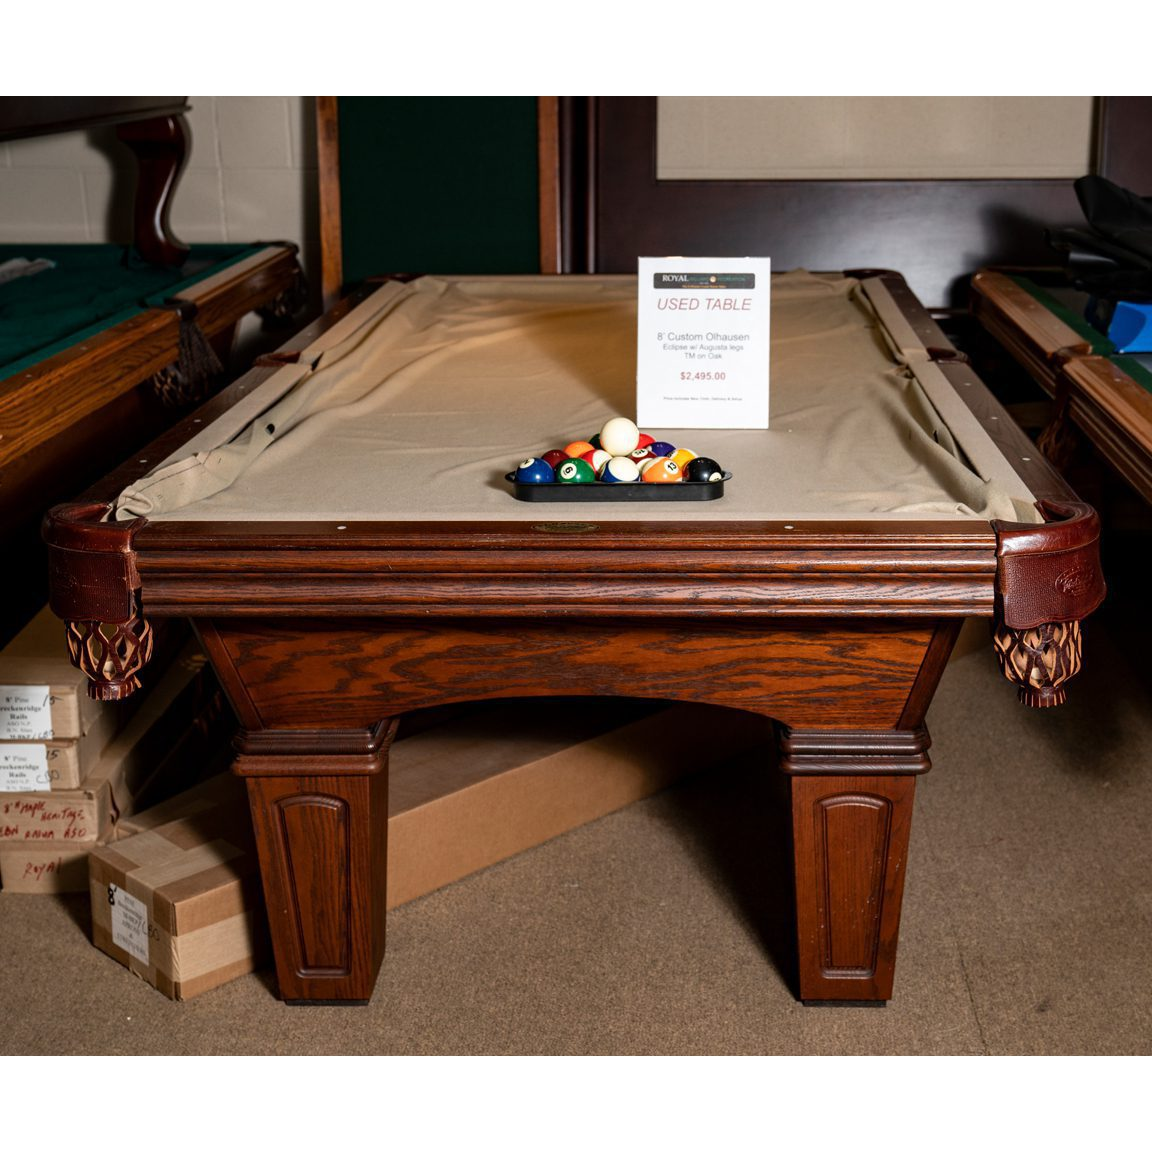 8 Gently Used Olhausen Eclipse Pool Table Royal Billiard Recreation